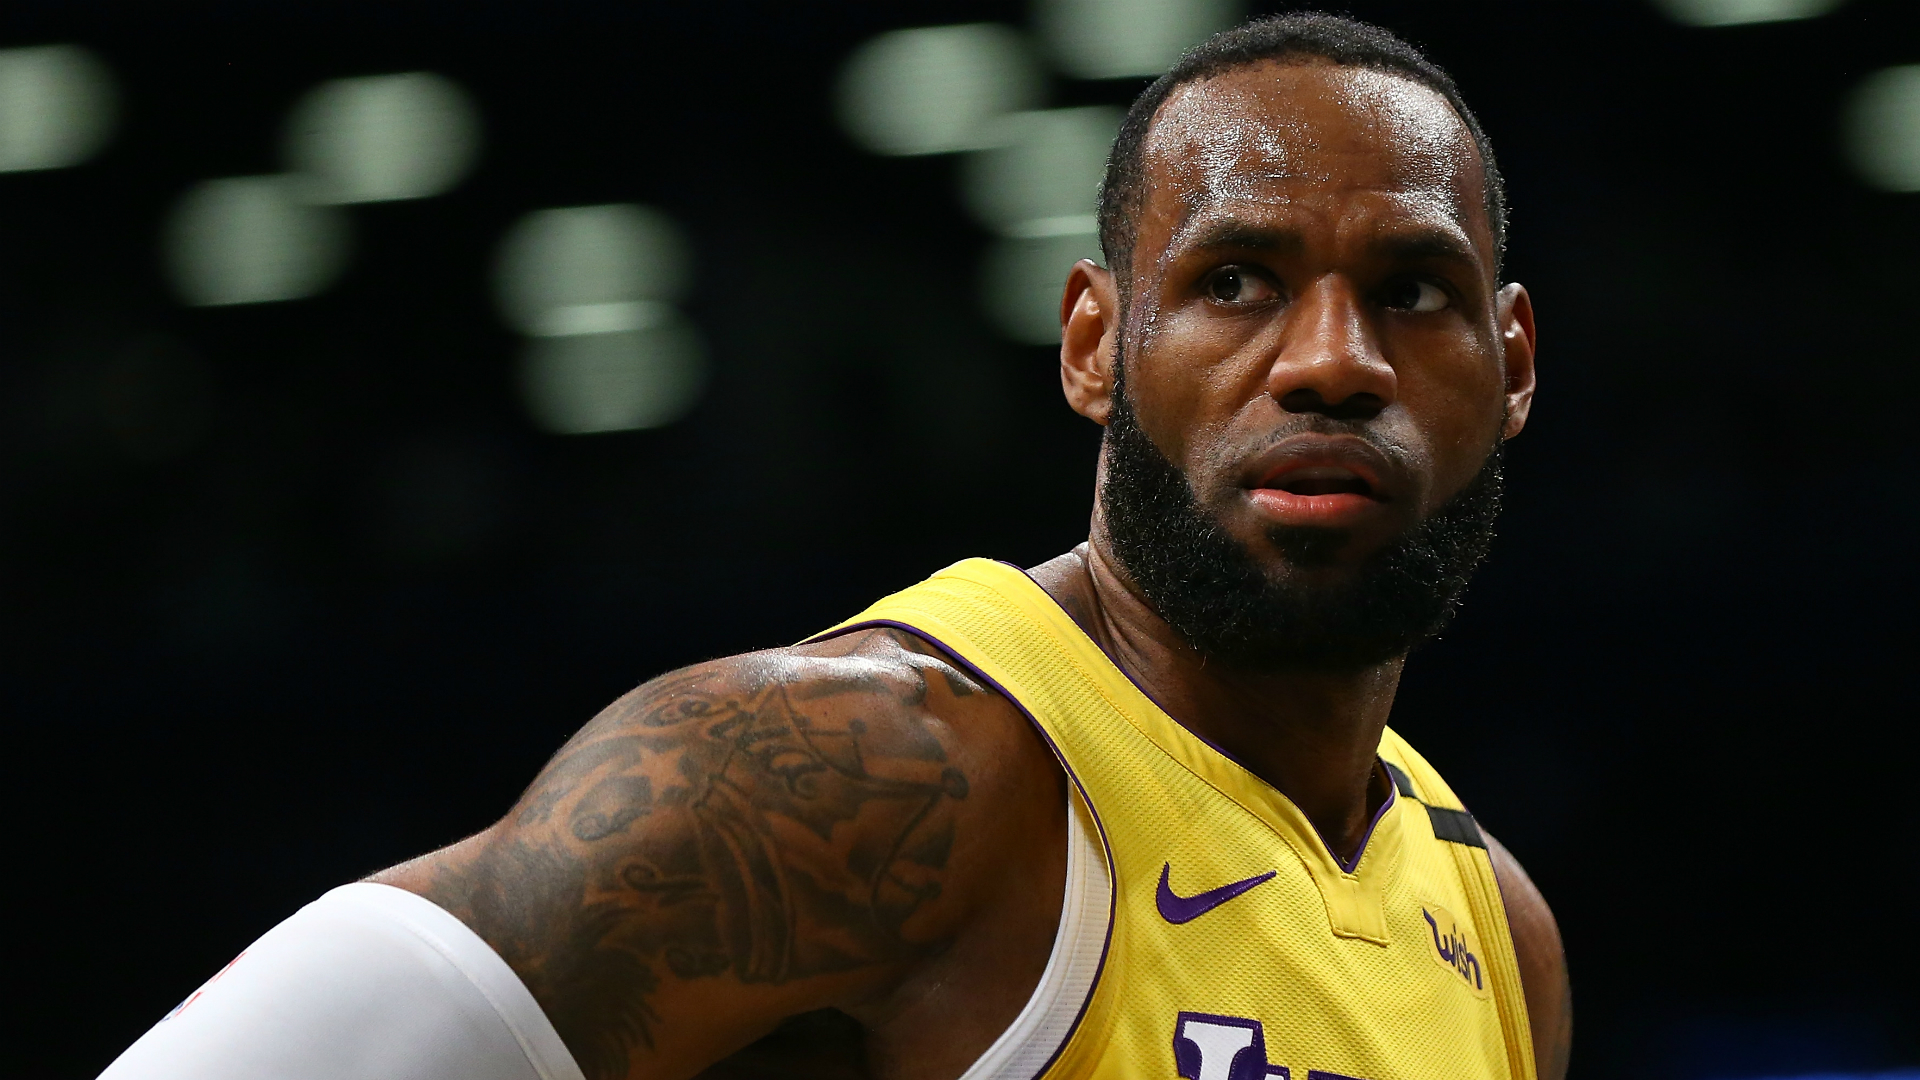 'I'd be f****** irate' – LeBron fumes over Astros sign-stealing scandal